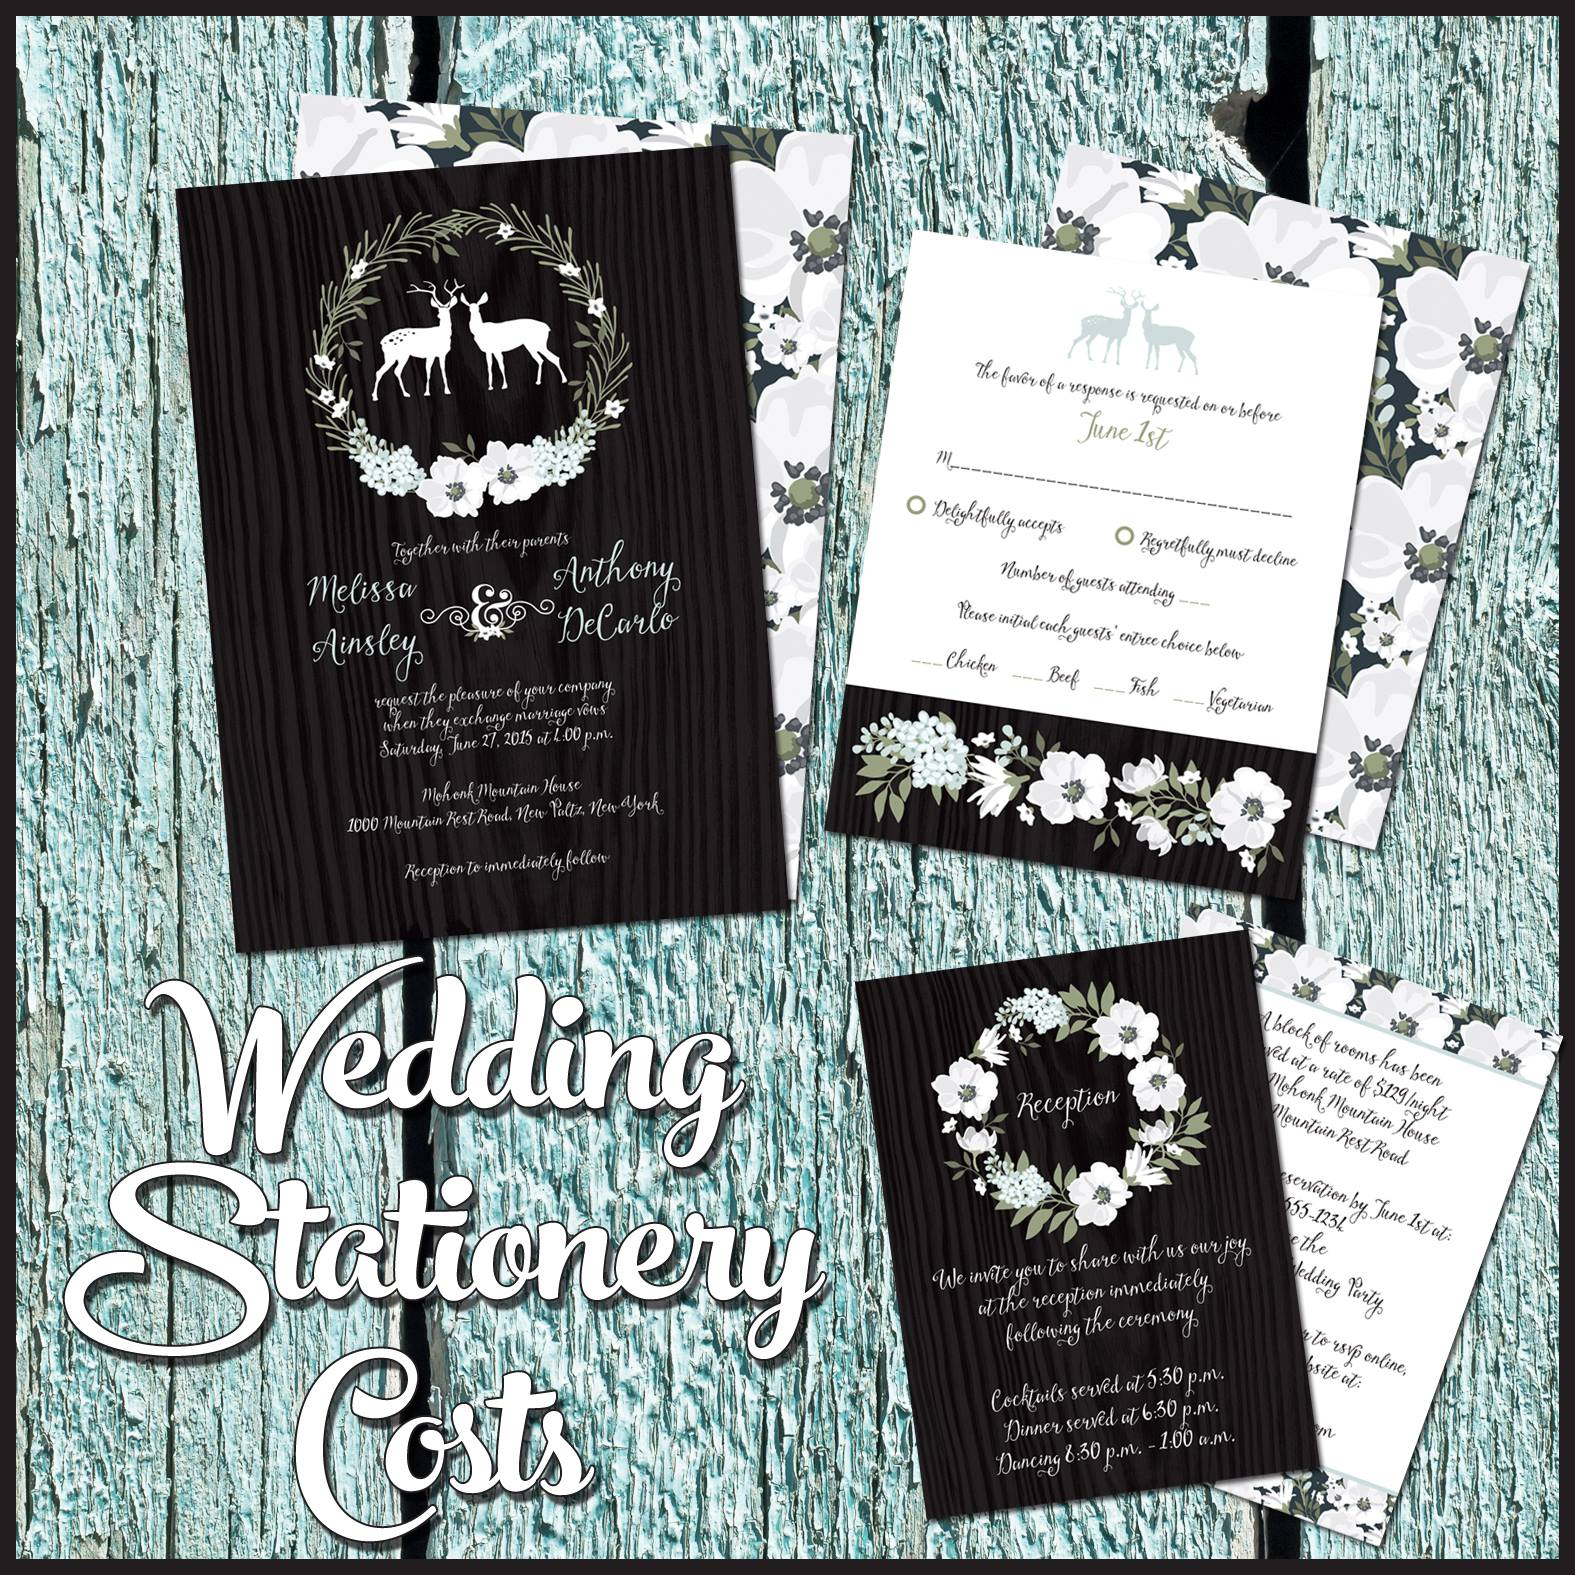 Party simplicity how much should i spend on wedding for 200 wedding invitations cost